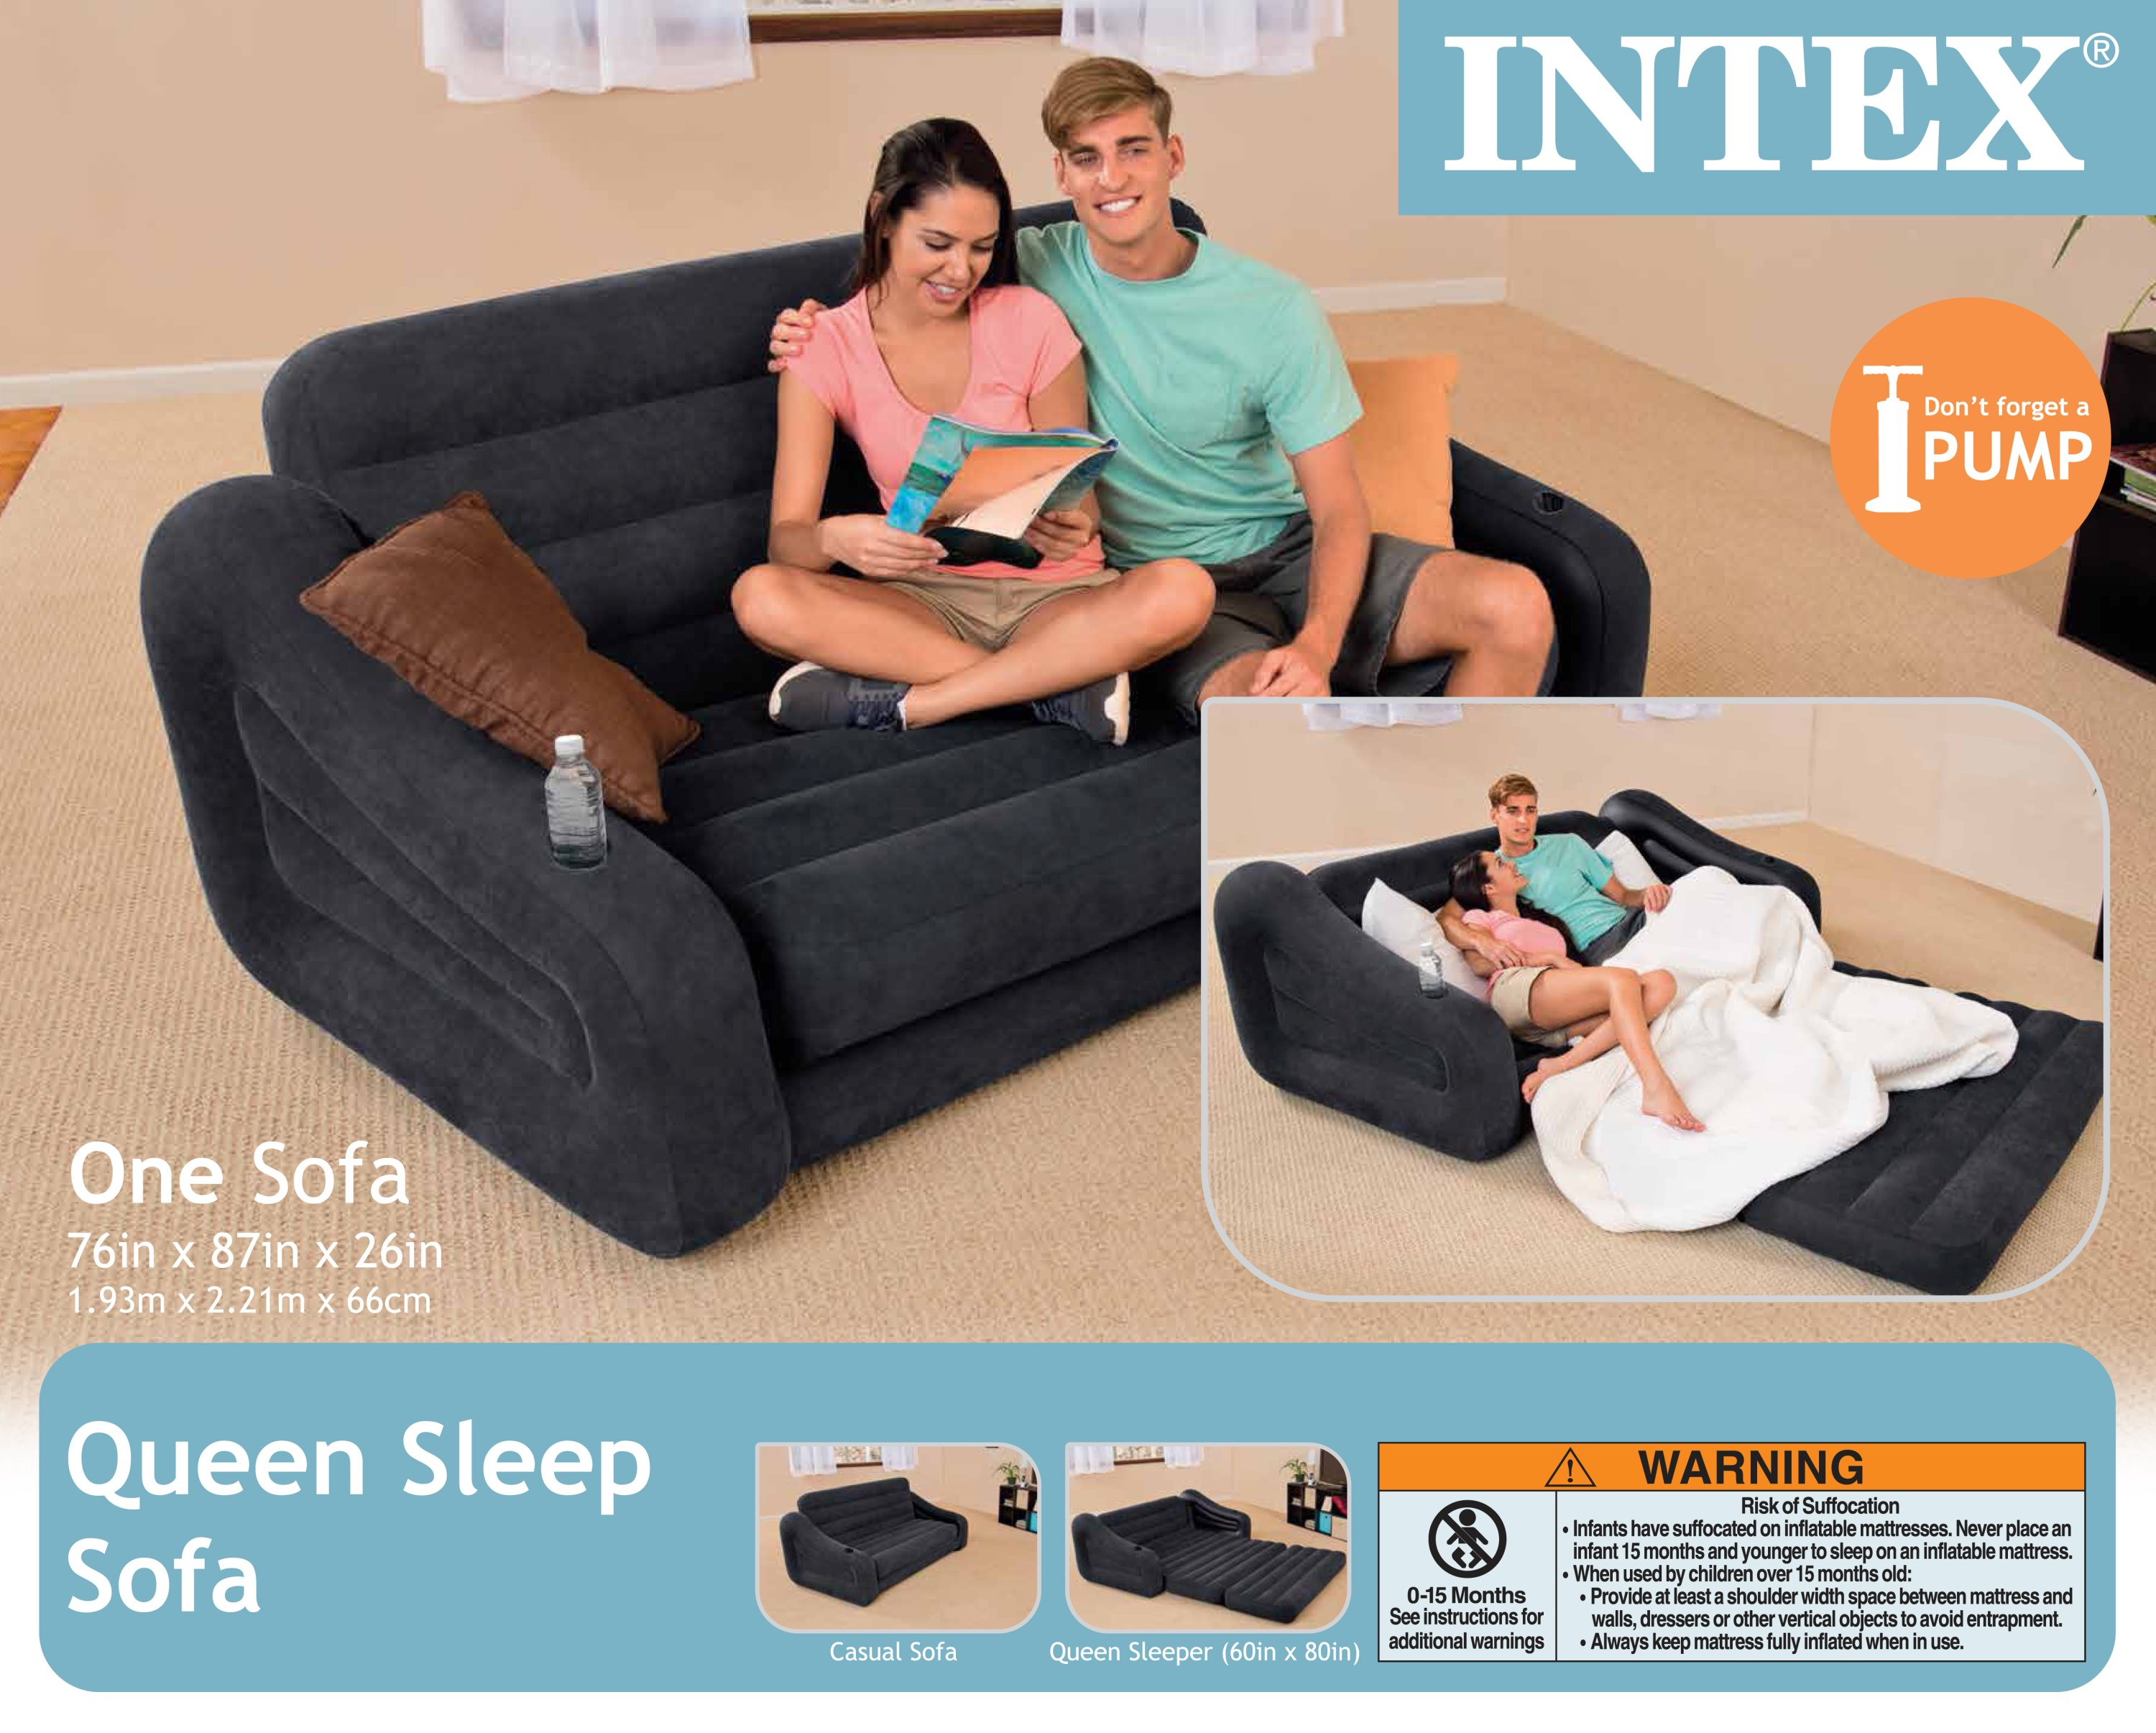 Intex Inflatable Queen Size Pull Out Sofa Couch Bed, Dark Gray